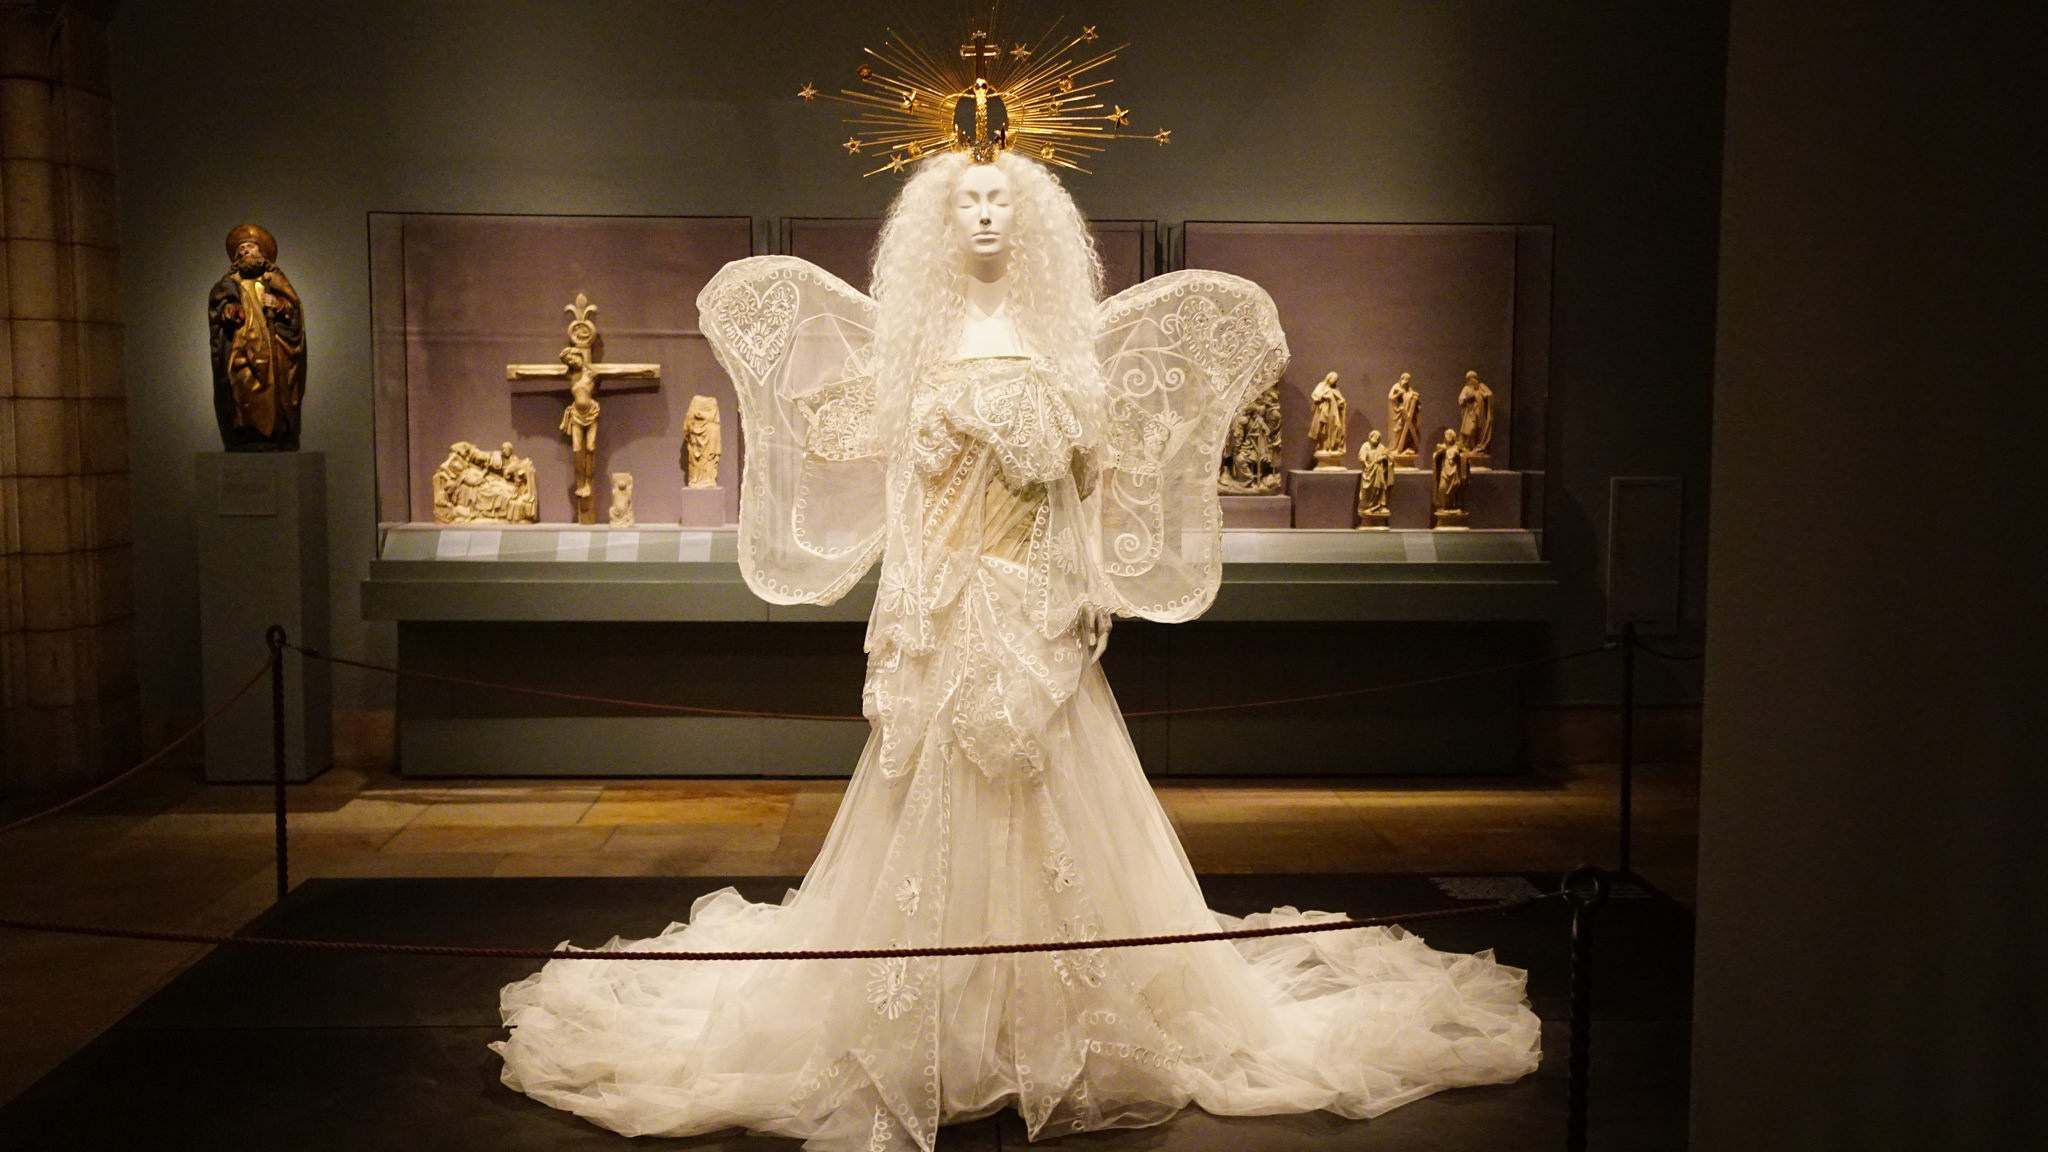 heavenly bodies8 Heavenly Bodies: Fashion and the Catholic Imagination in MET